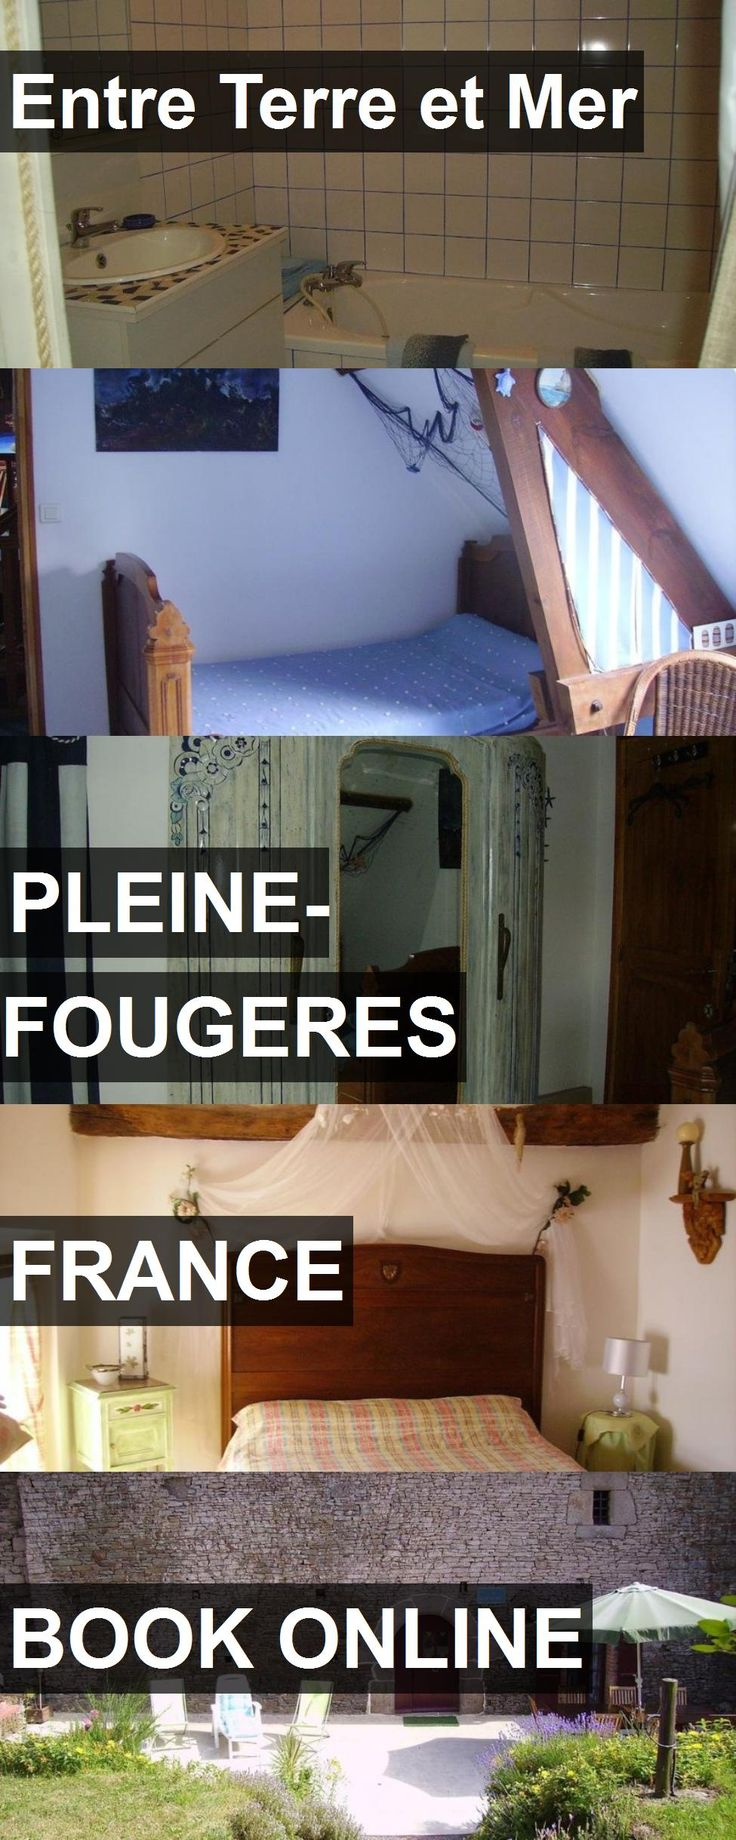 Hotel Entre Terre et Mer in Pleine-Fougeres, France. For more information, photos, reviews and best prices please follow the link. #France #Pleine-Fougeres #travel #vacation #hotel